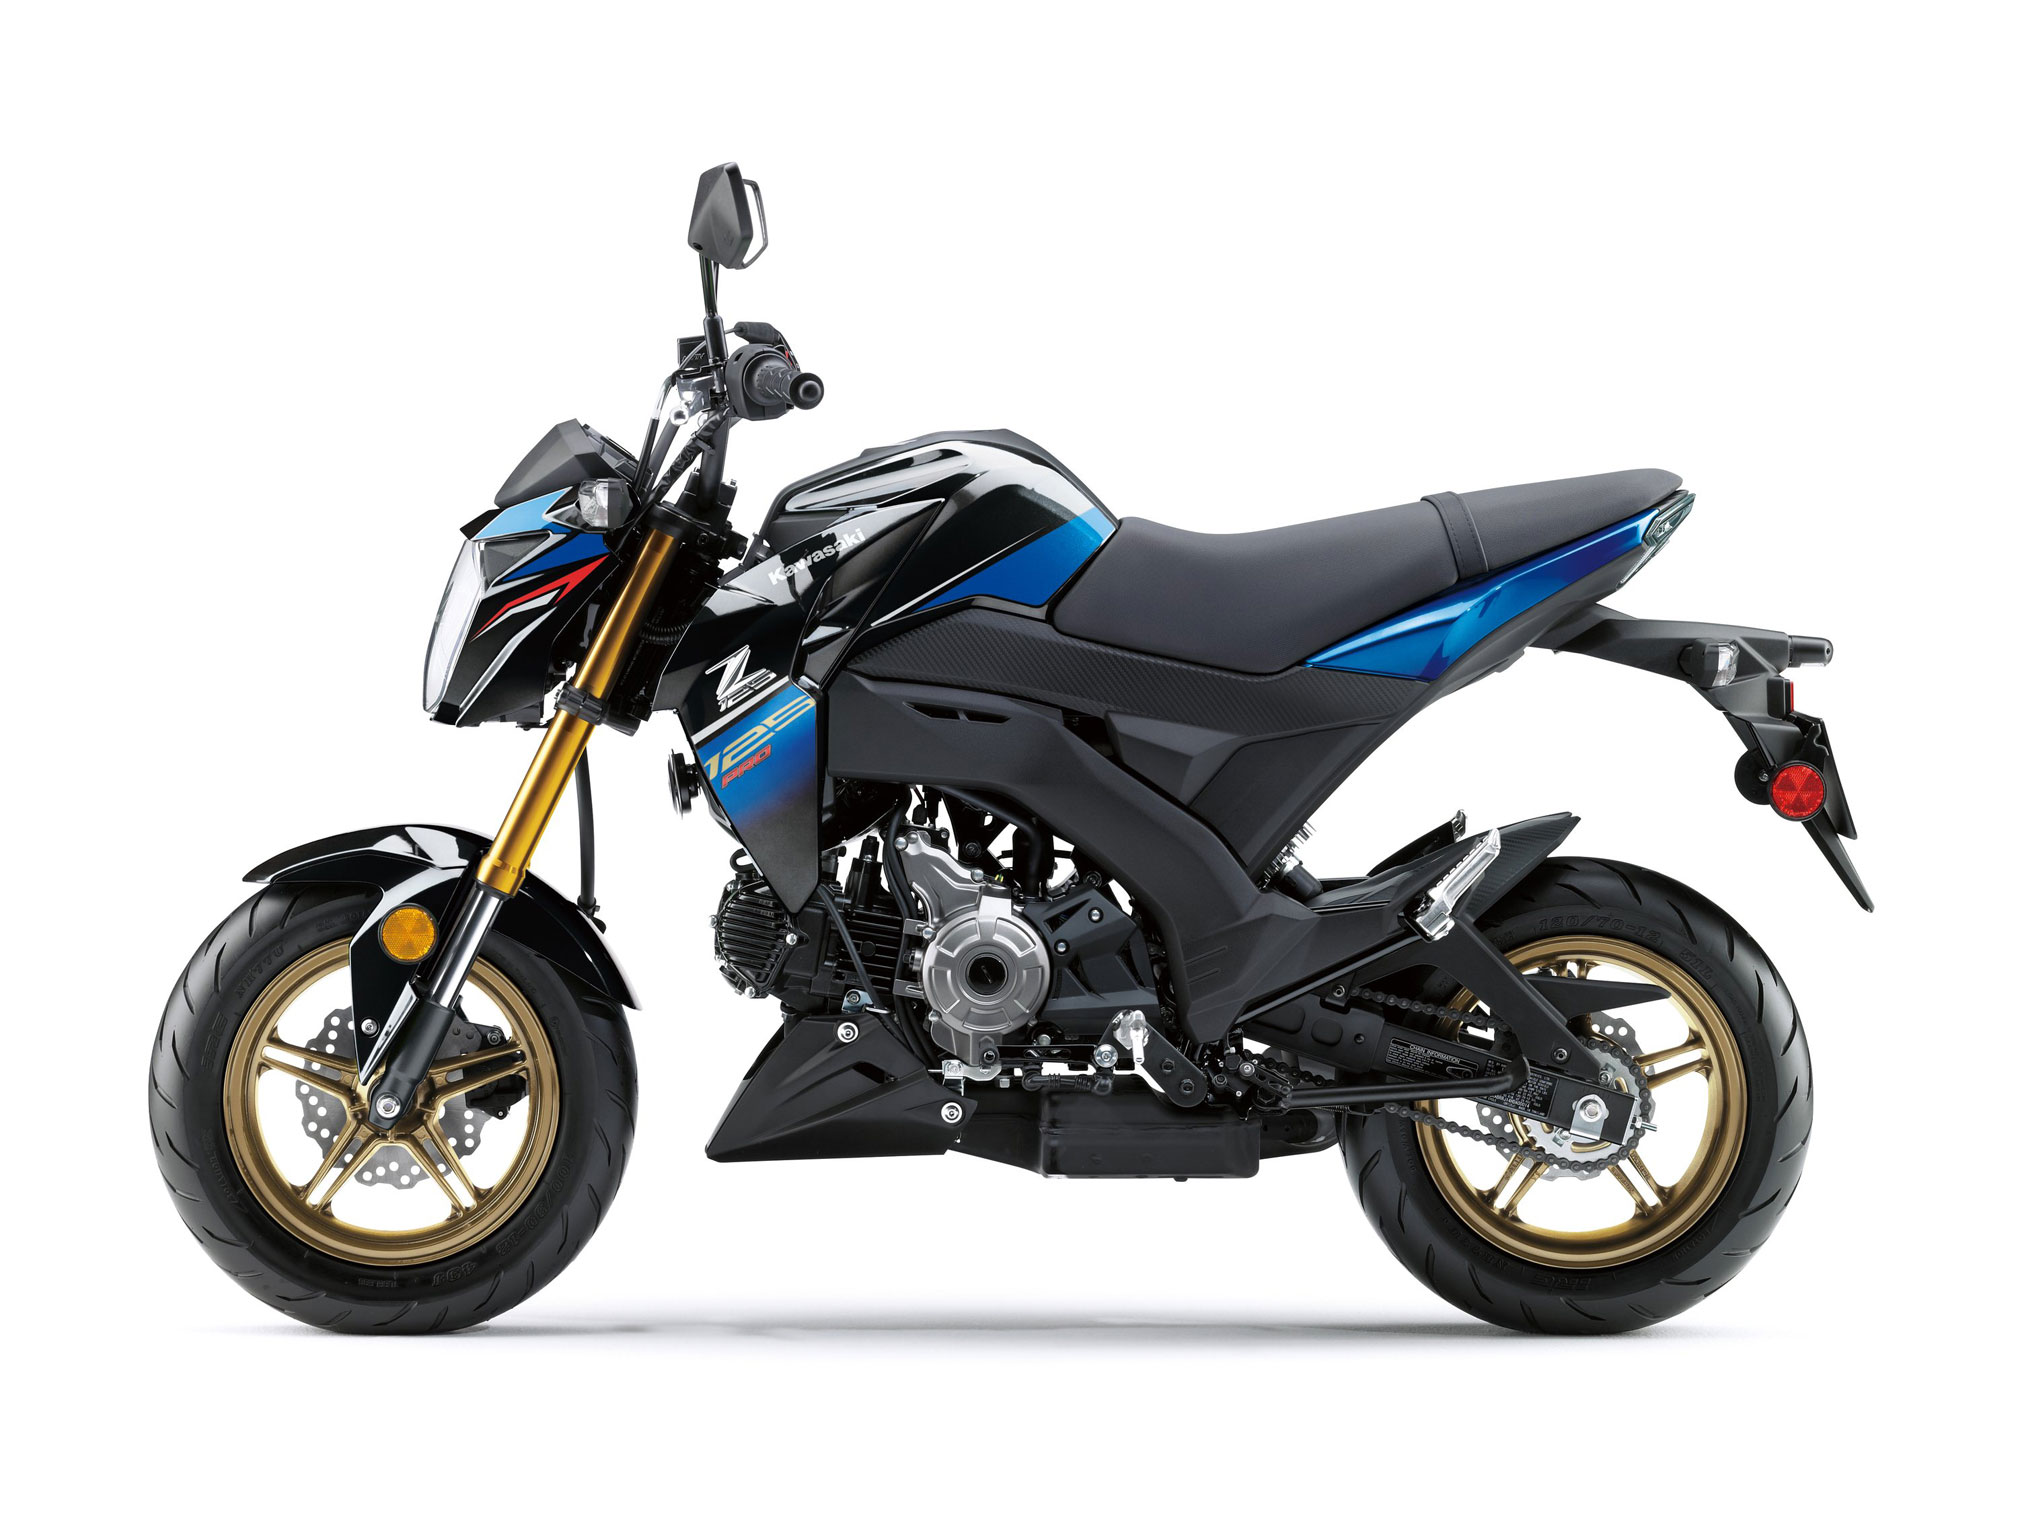 Honda Grom Review >> 2018 Kawasaki Z125 Pro SE Review - TotalMotorcycle